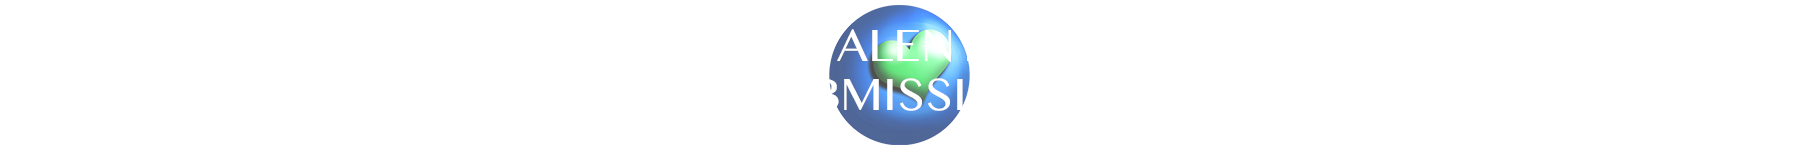 website buttons TALENT SUB.png